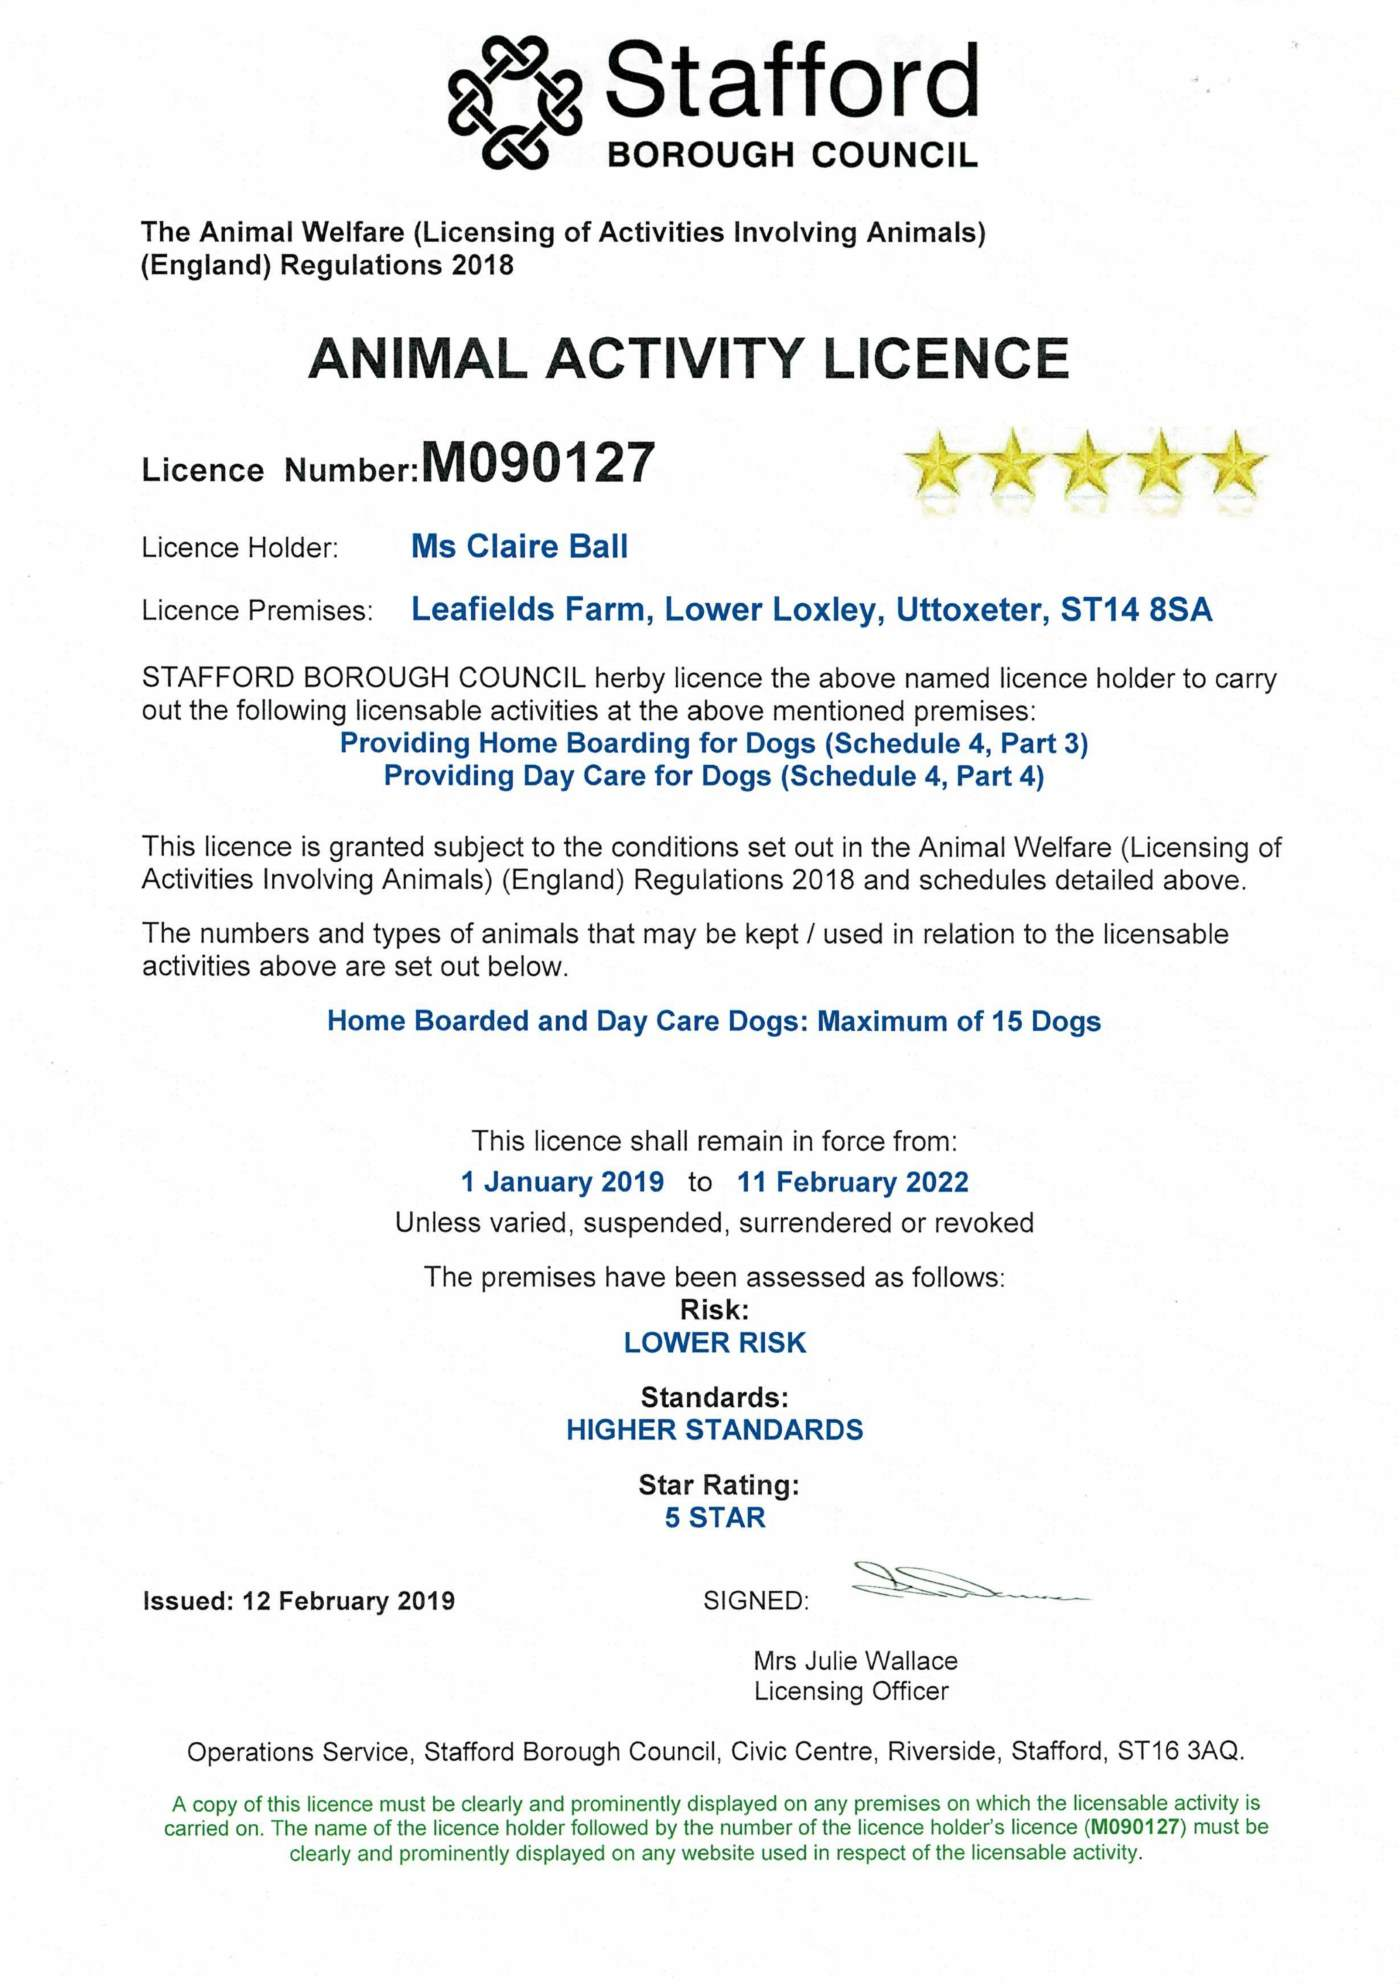 Leafeilds Dog Boarding in Uttoxeter Animal Activity Licence M090127